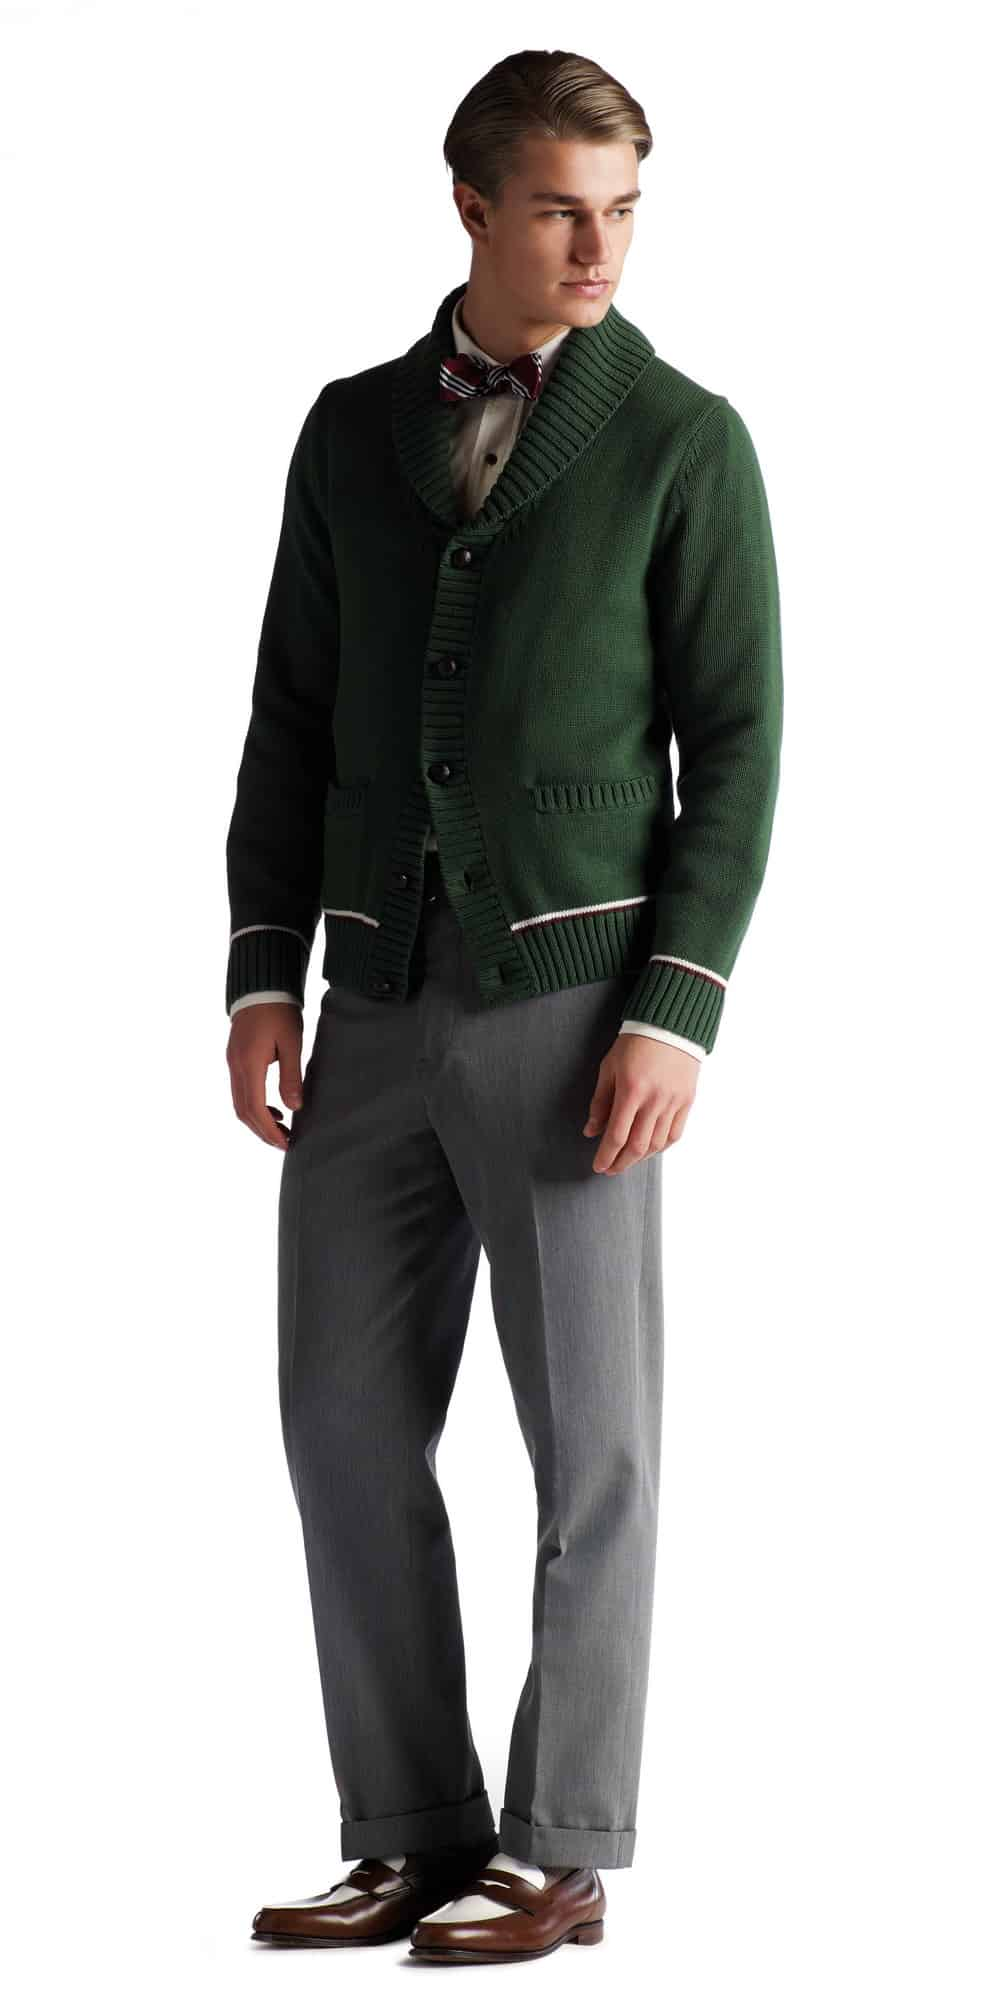 Gatsby Dress Code For Men Great Mens Fashion &amp Brooks Brothers